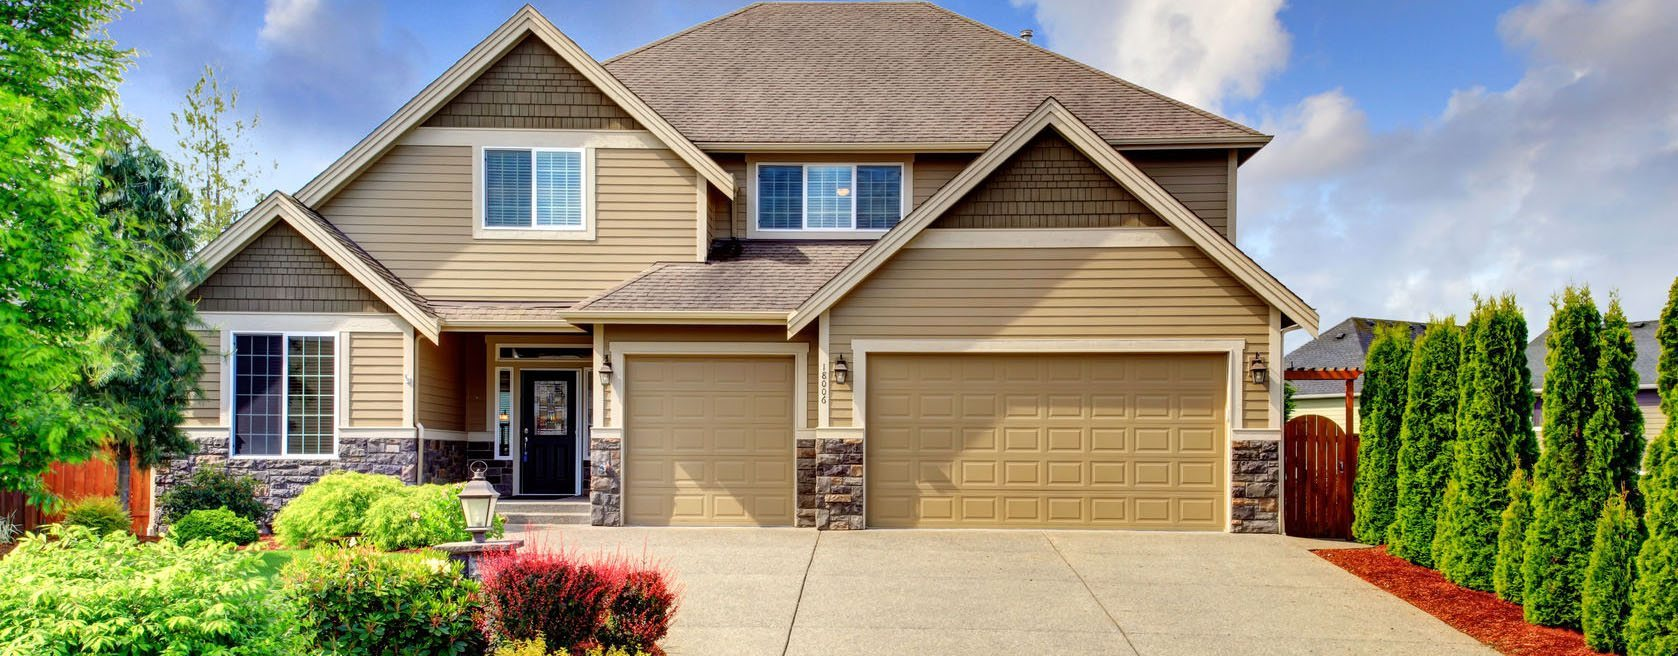 27139616 - beige luxury house tih stone trim base  view of porch, garage and driveway